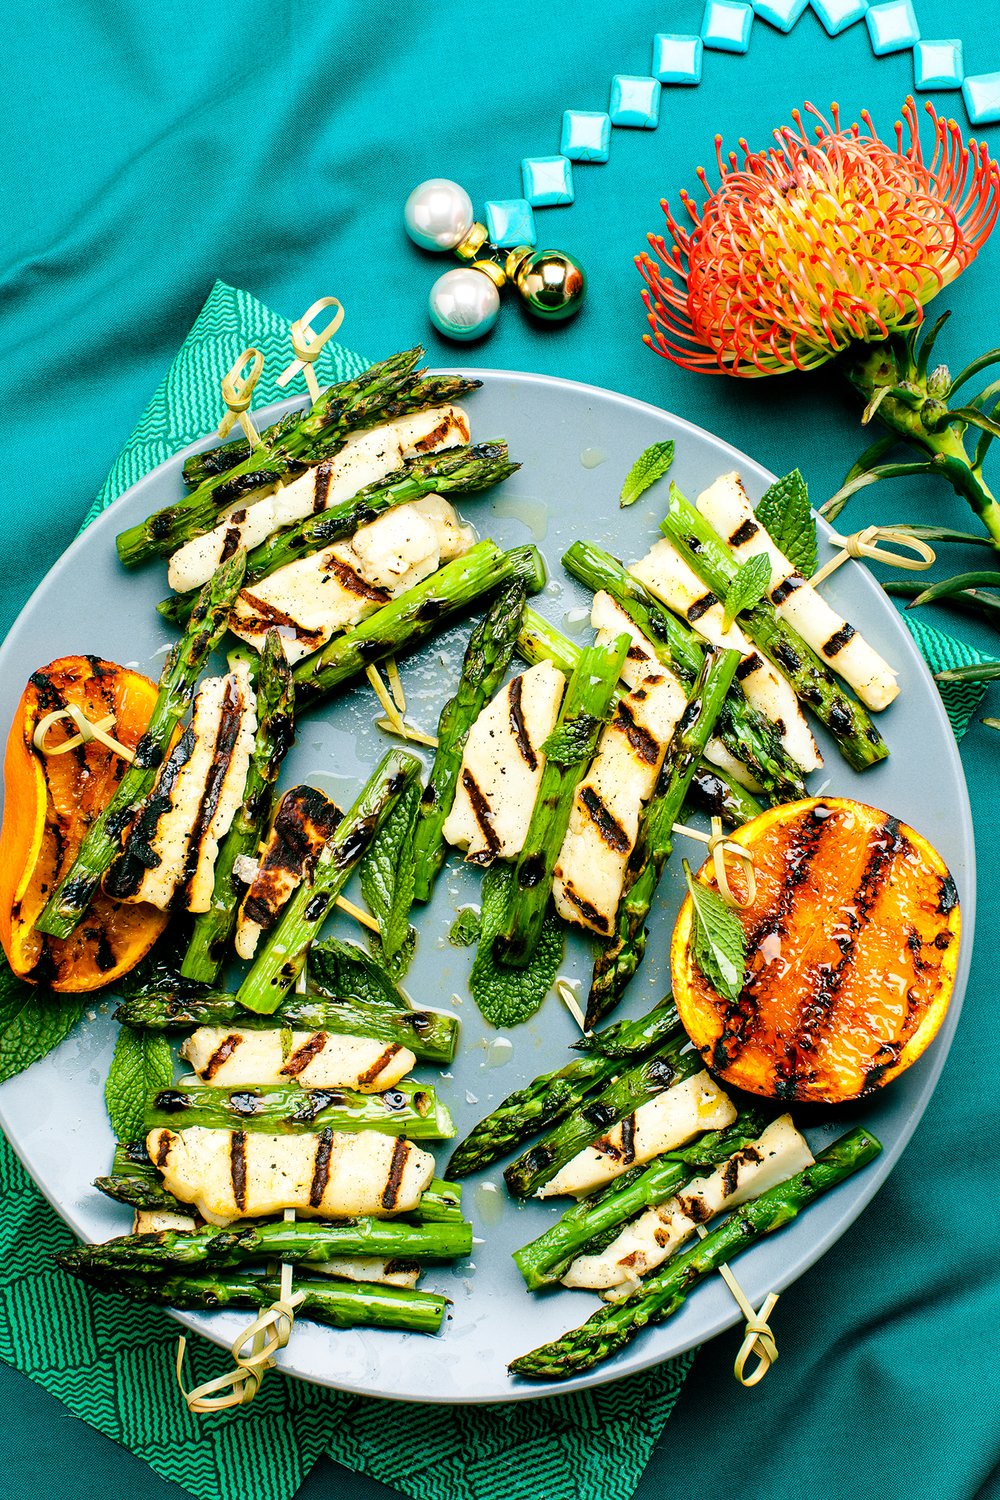 Grilled Haloumi and Asparagus with Orange & Mint, appeared originally in Yum. Gluten Free Magazine Dec Issue. Recipe and styling by Cle-ann, photo by Hugh Adams.